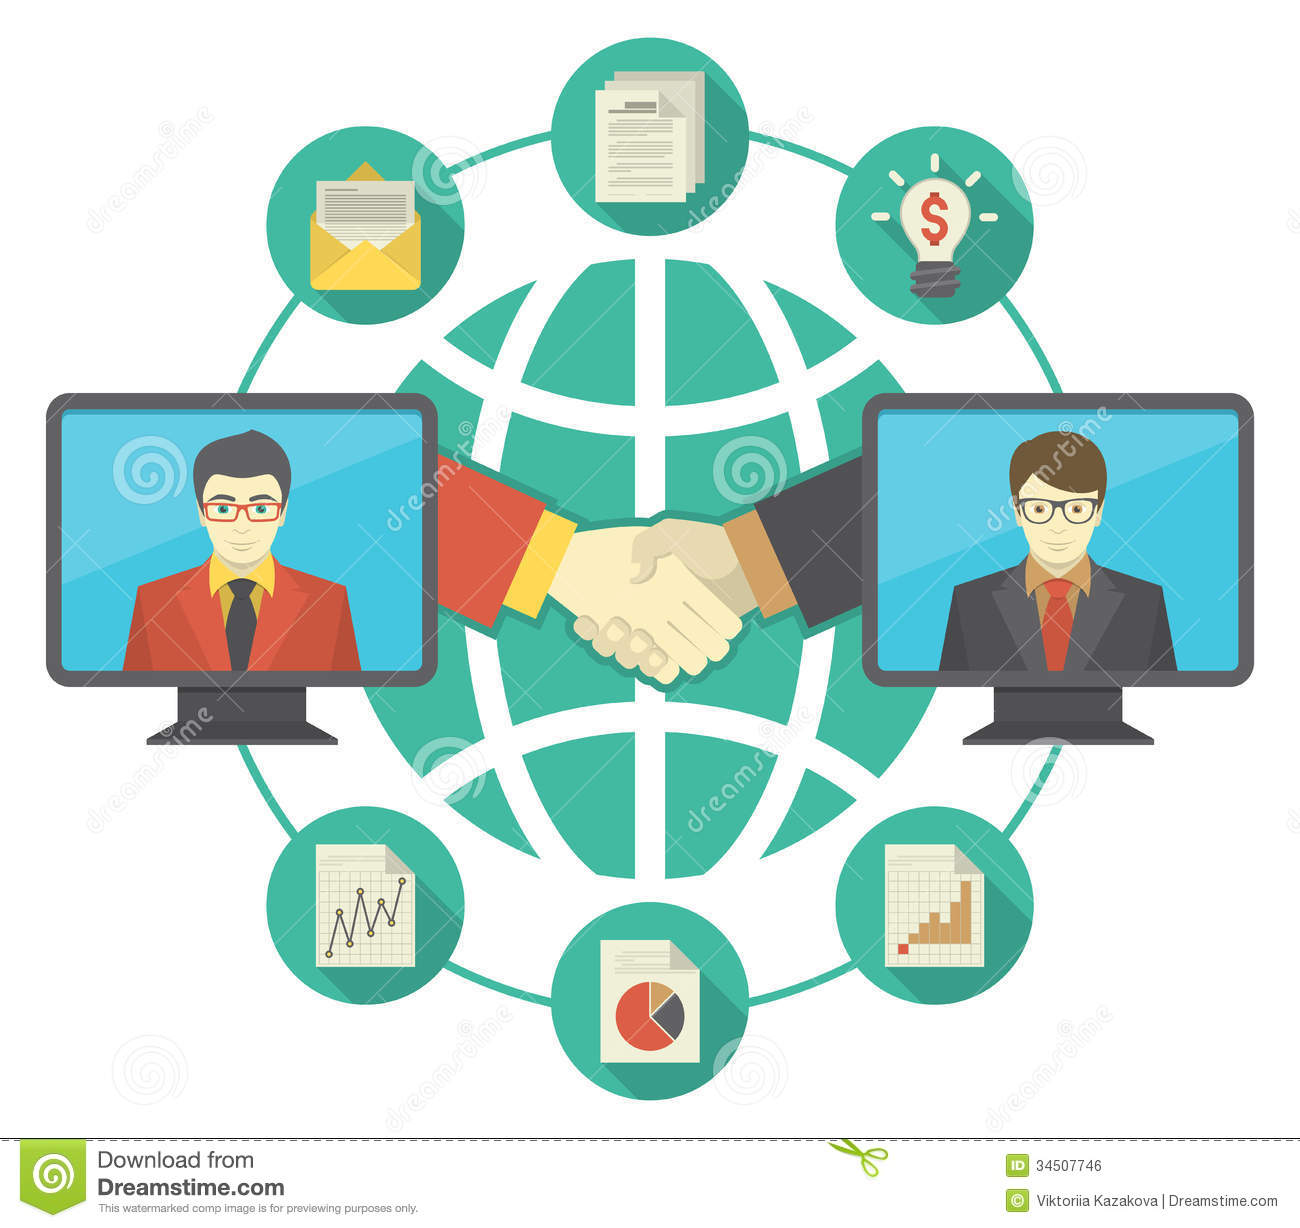 Of Business Cooperation With The New Information Sharing Technologies